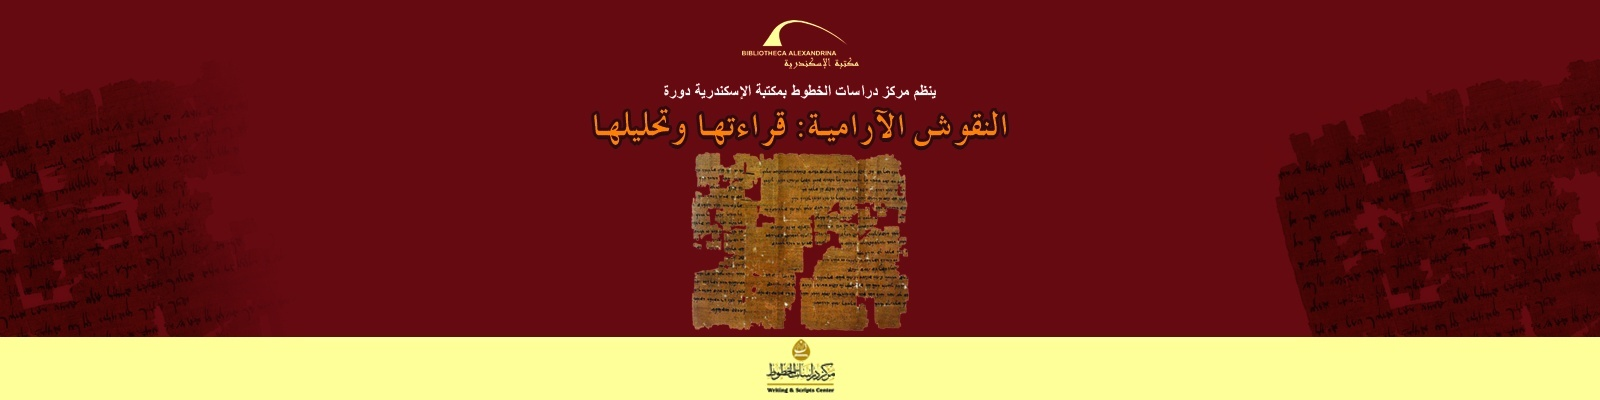 Aramaic Inscriptions: Reading and Analysis